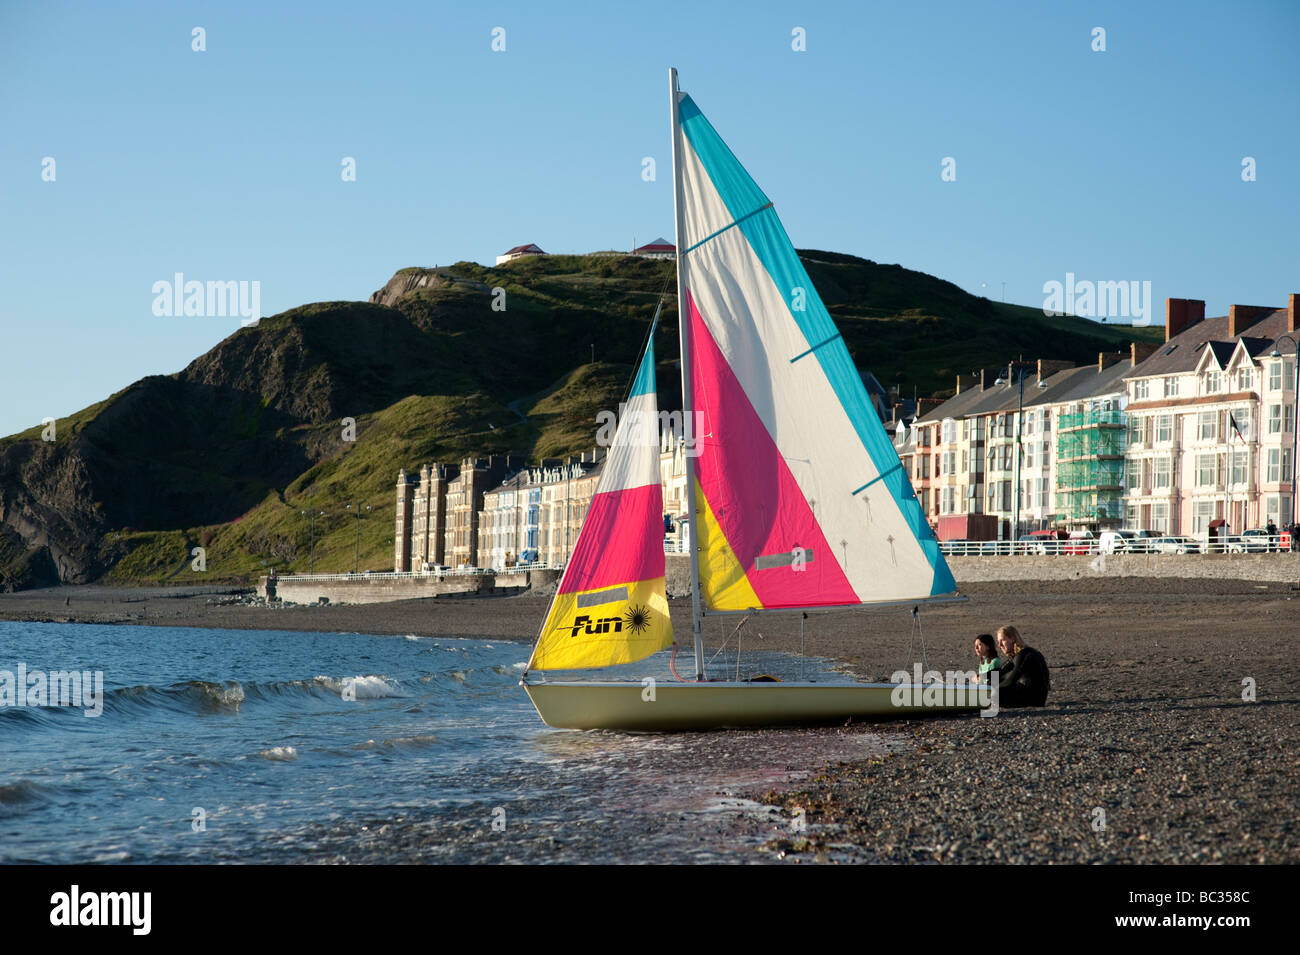 Summer evening Two people with their small sailing dinghy on the beach Aberystwyth Wales UK - Stock Image